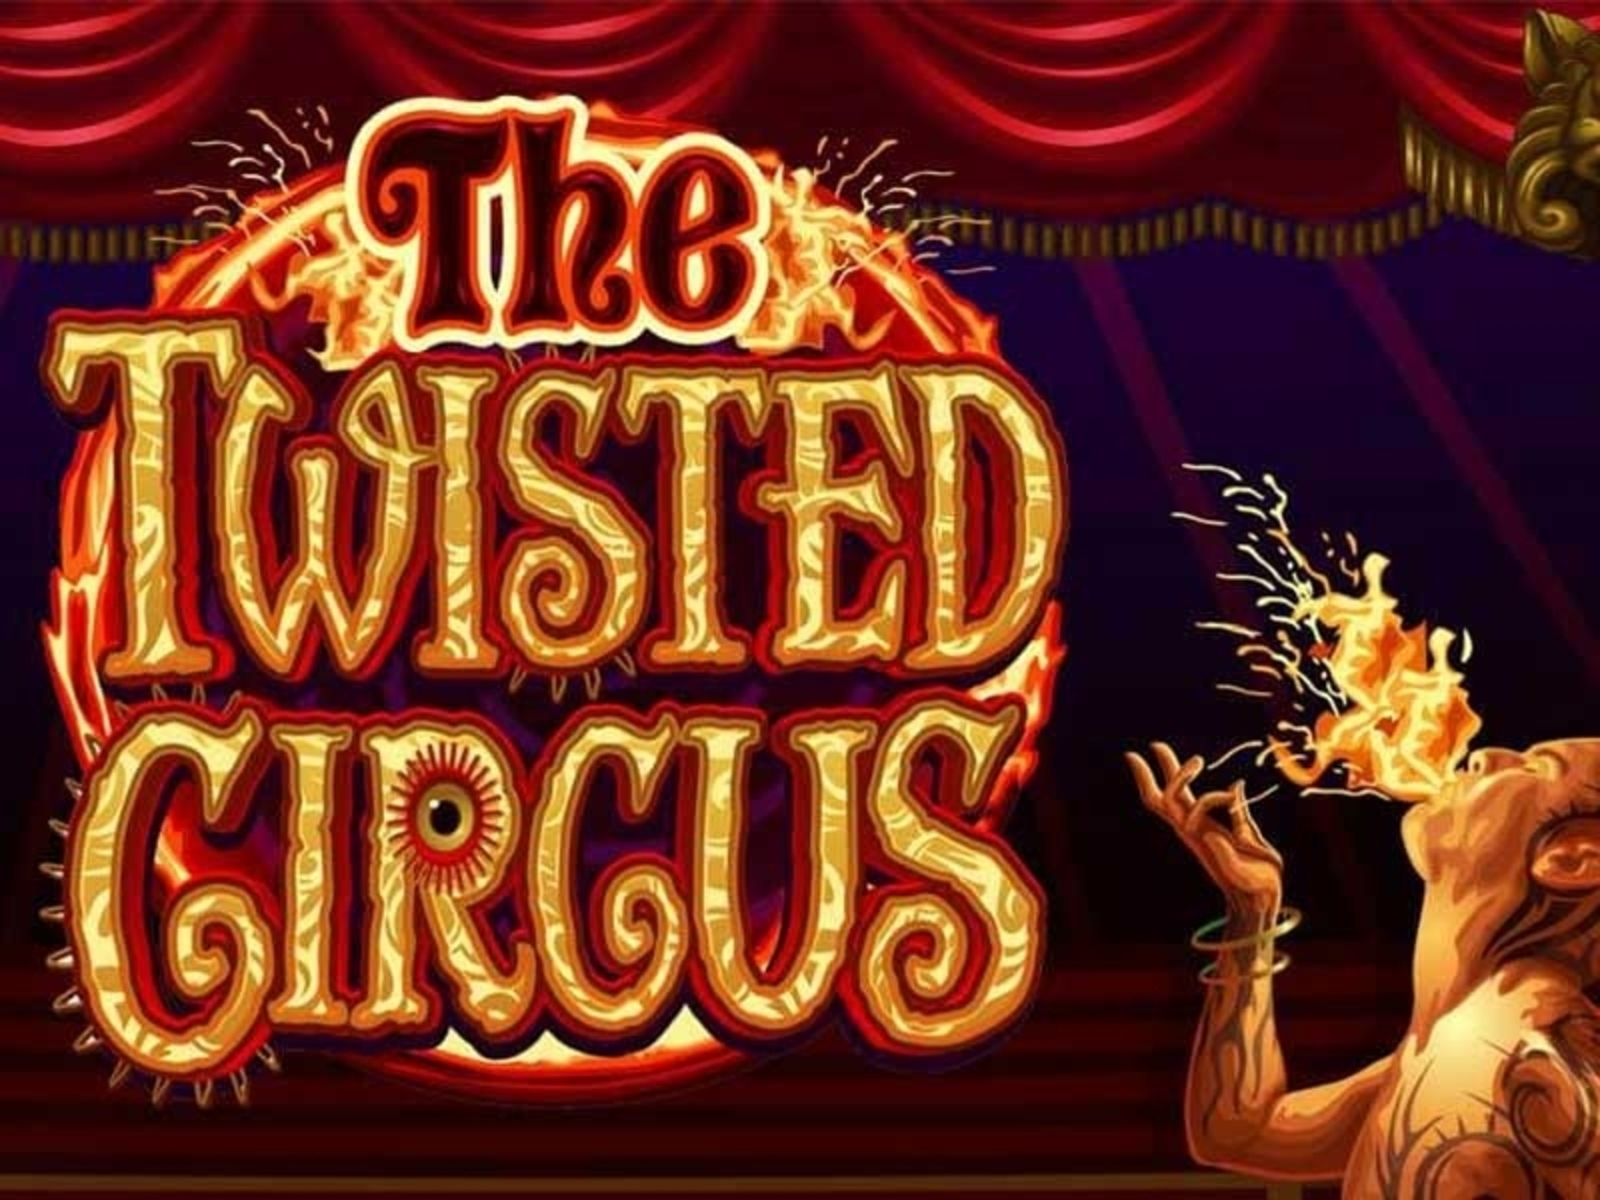 The The Twisted Circus Online Slot Demo Game by Microgaming